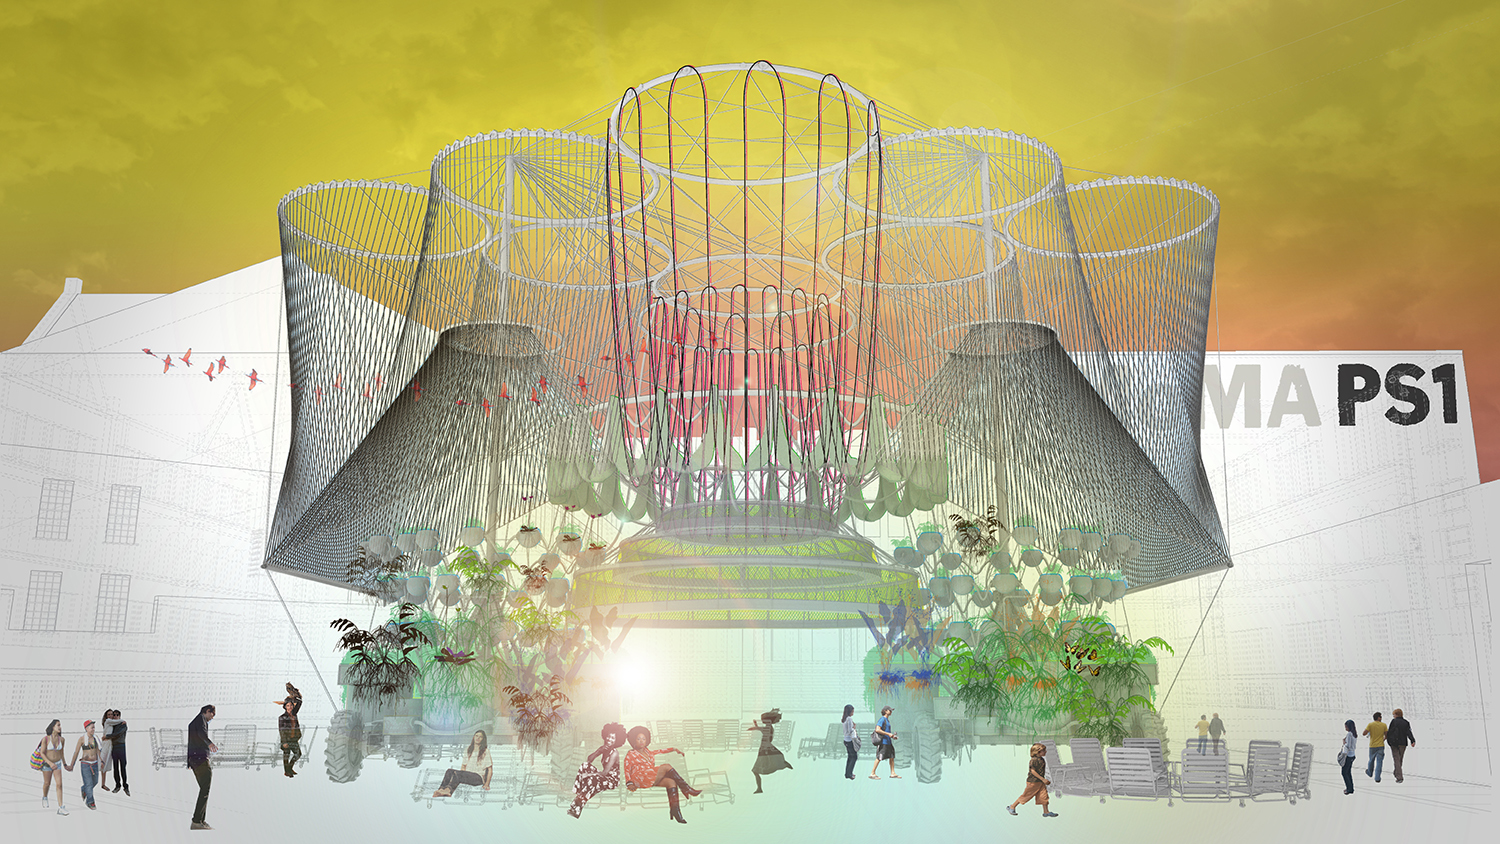 MoMA PS1 announces winning design for this summer's Warm Up installation